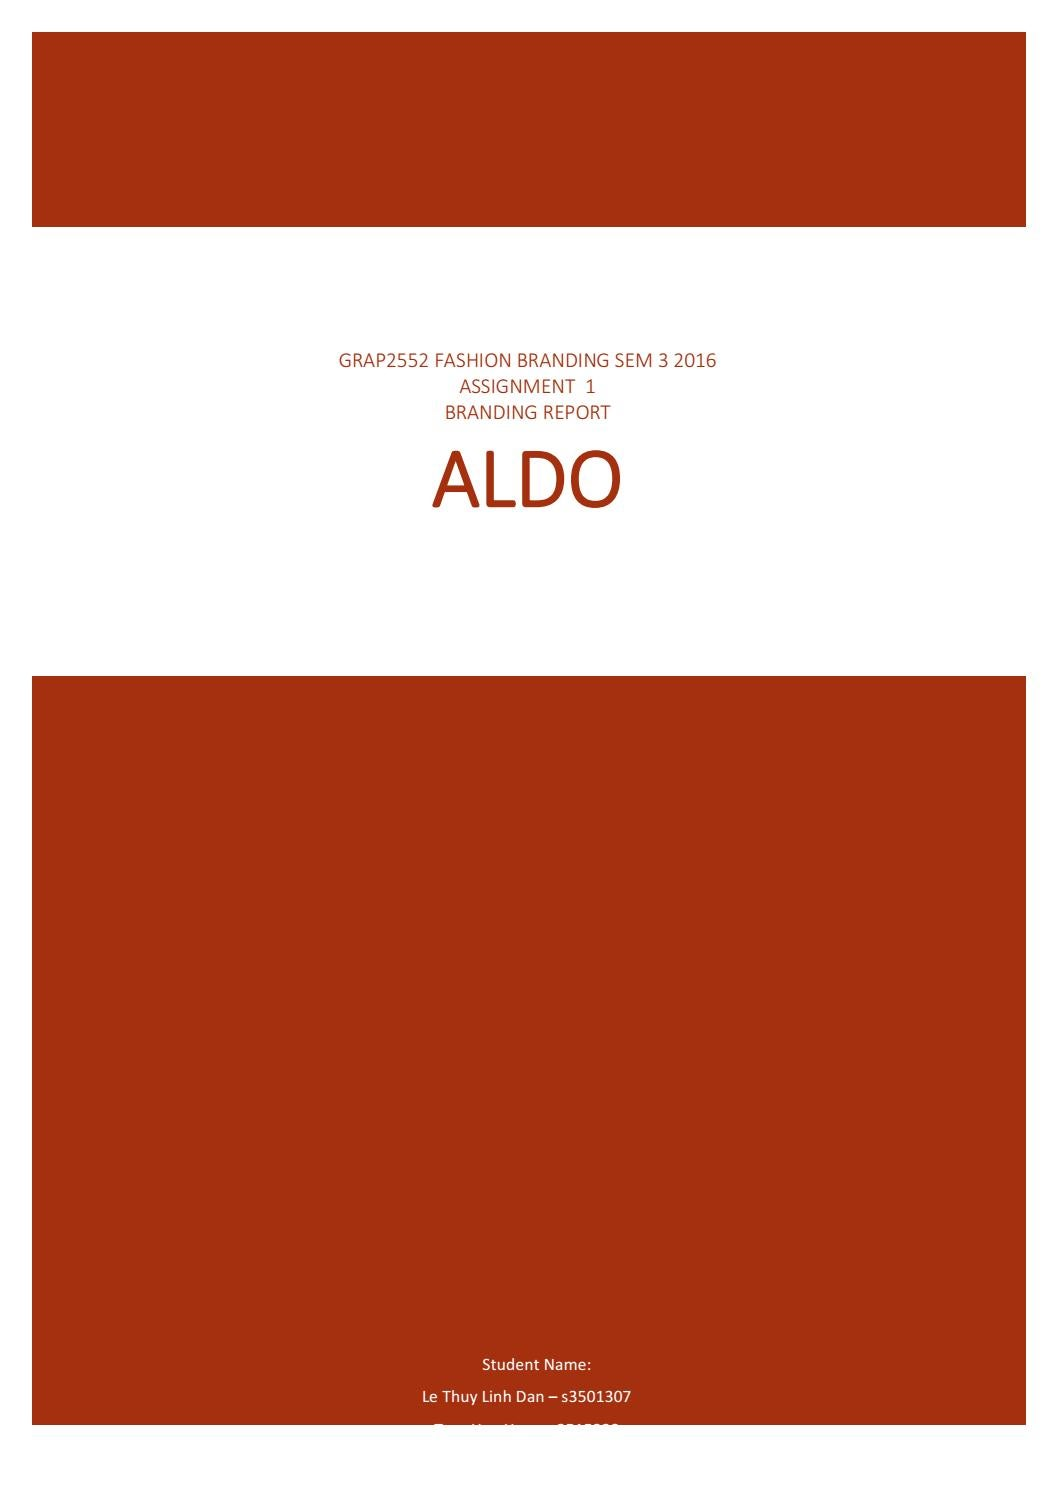 Aldo assignment pdf by s3515229 issuu buycottarizona Gallery